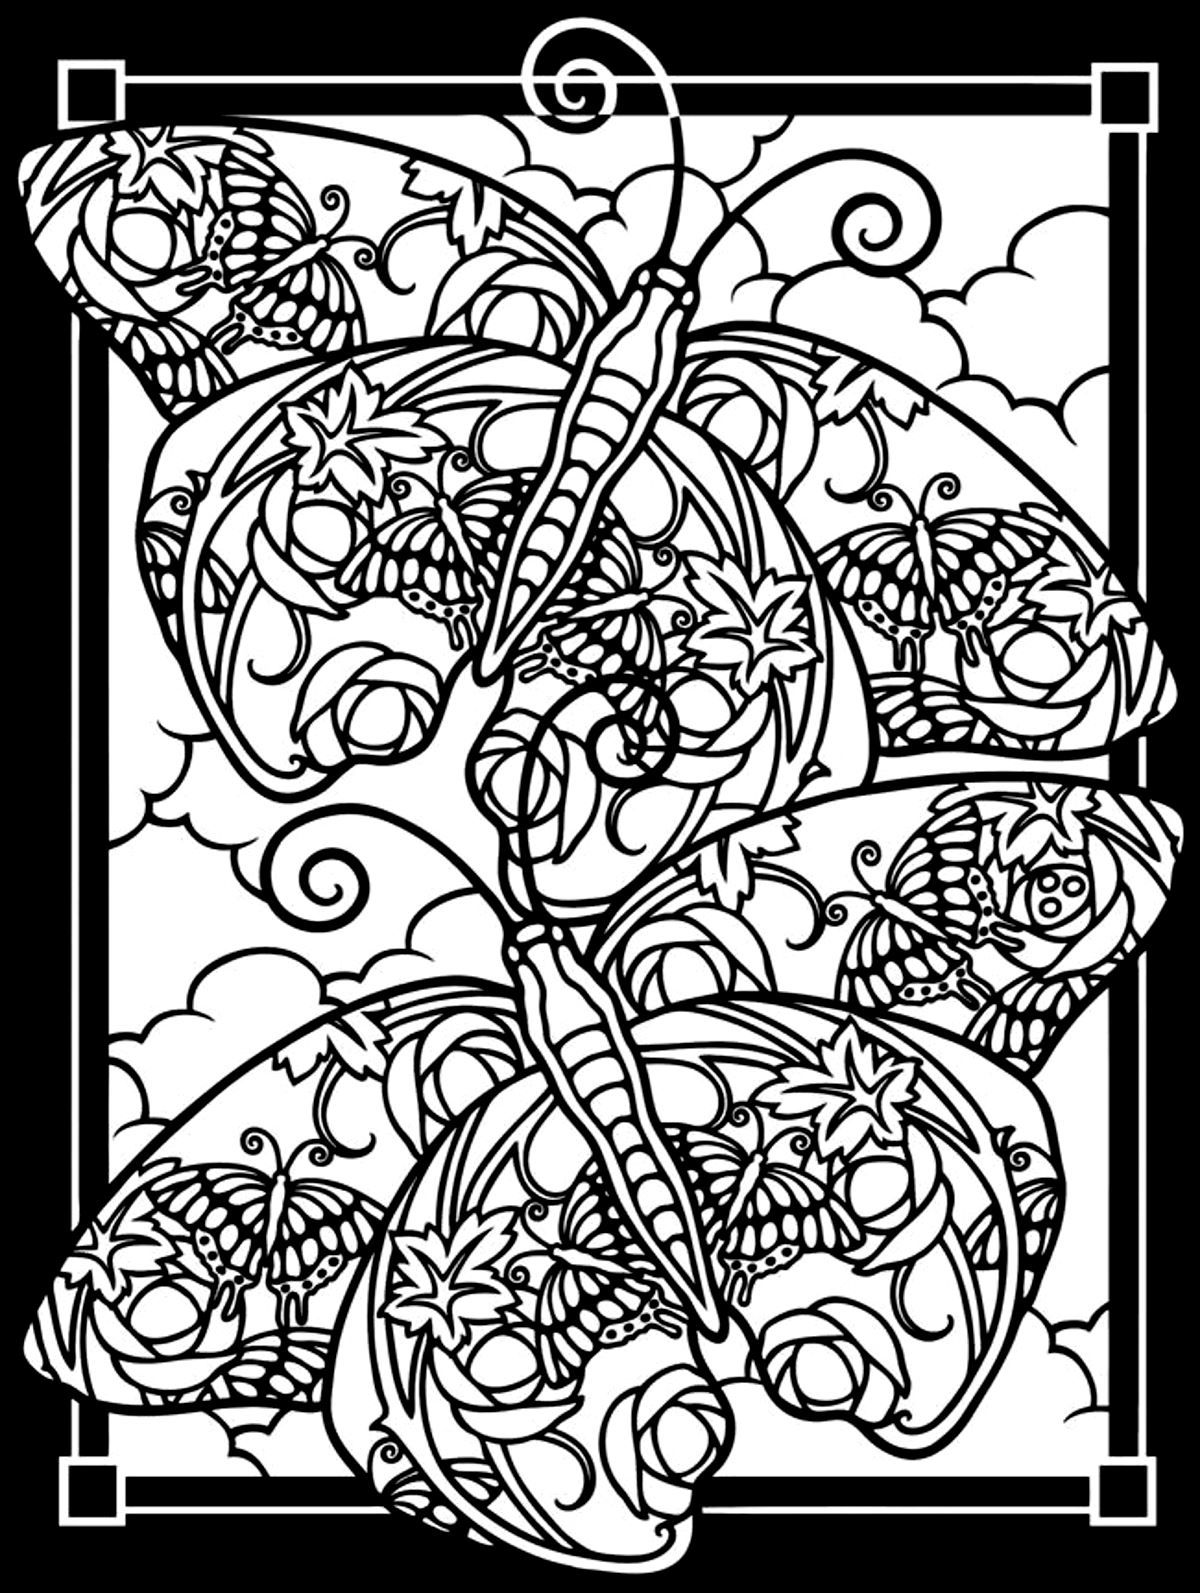 Adult coloring pages black and white ~ Free coloring page coloring-adult-difficult-two ...